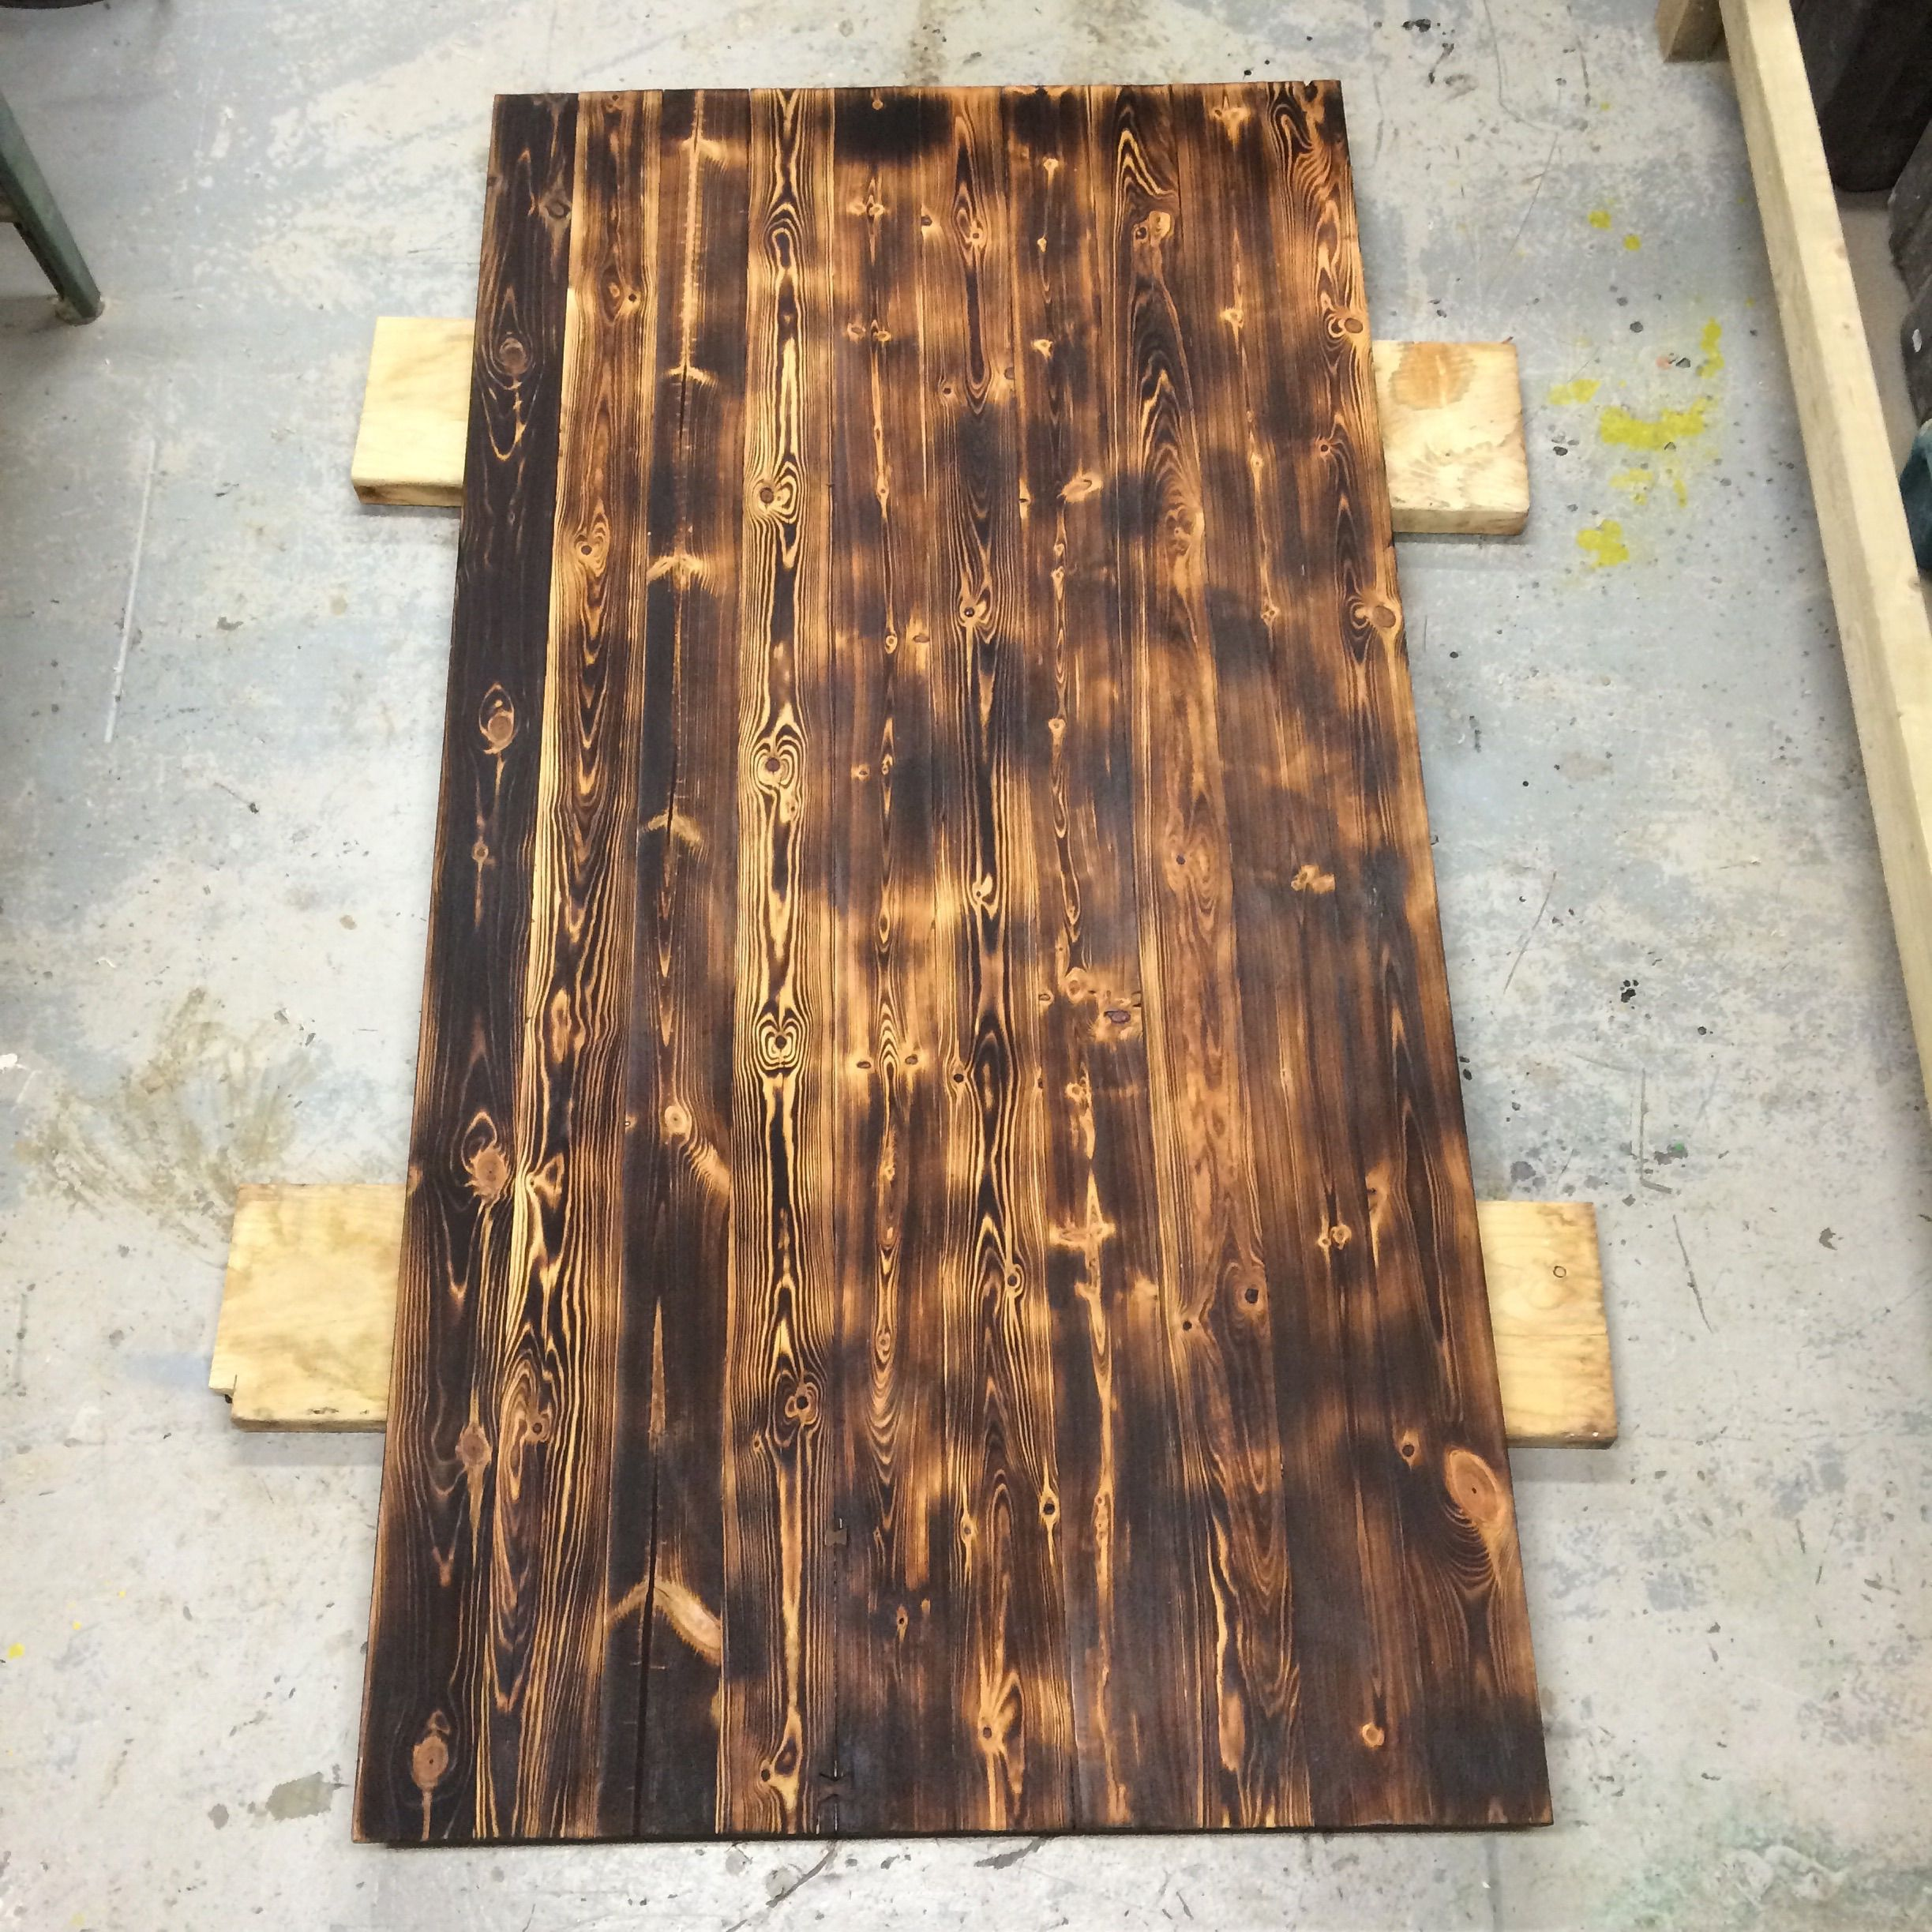 Burnt Pine Dinning Tabletop Finished With Hard Wax Oil And Final Layer Of  Clear Beeswax.